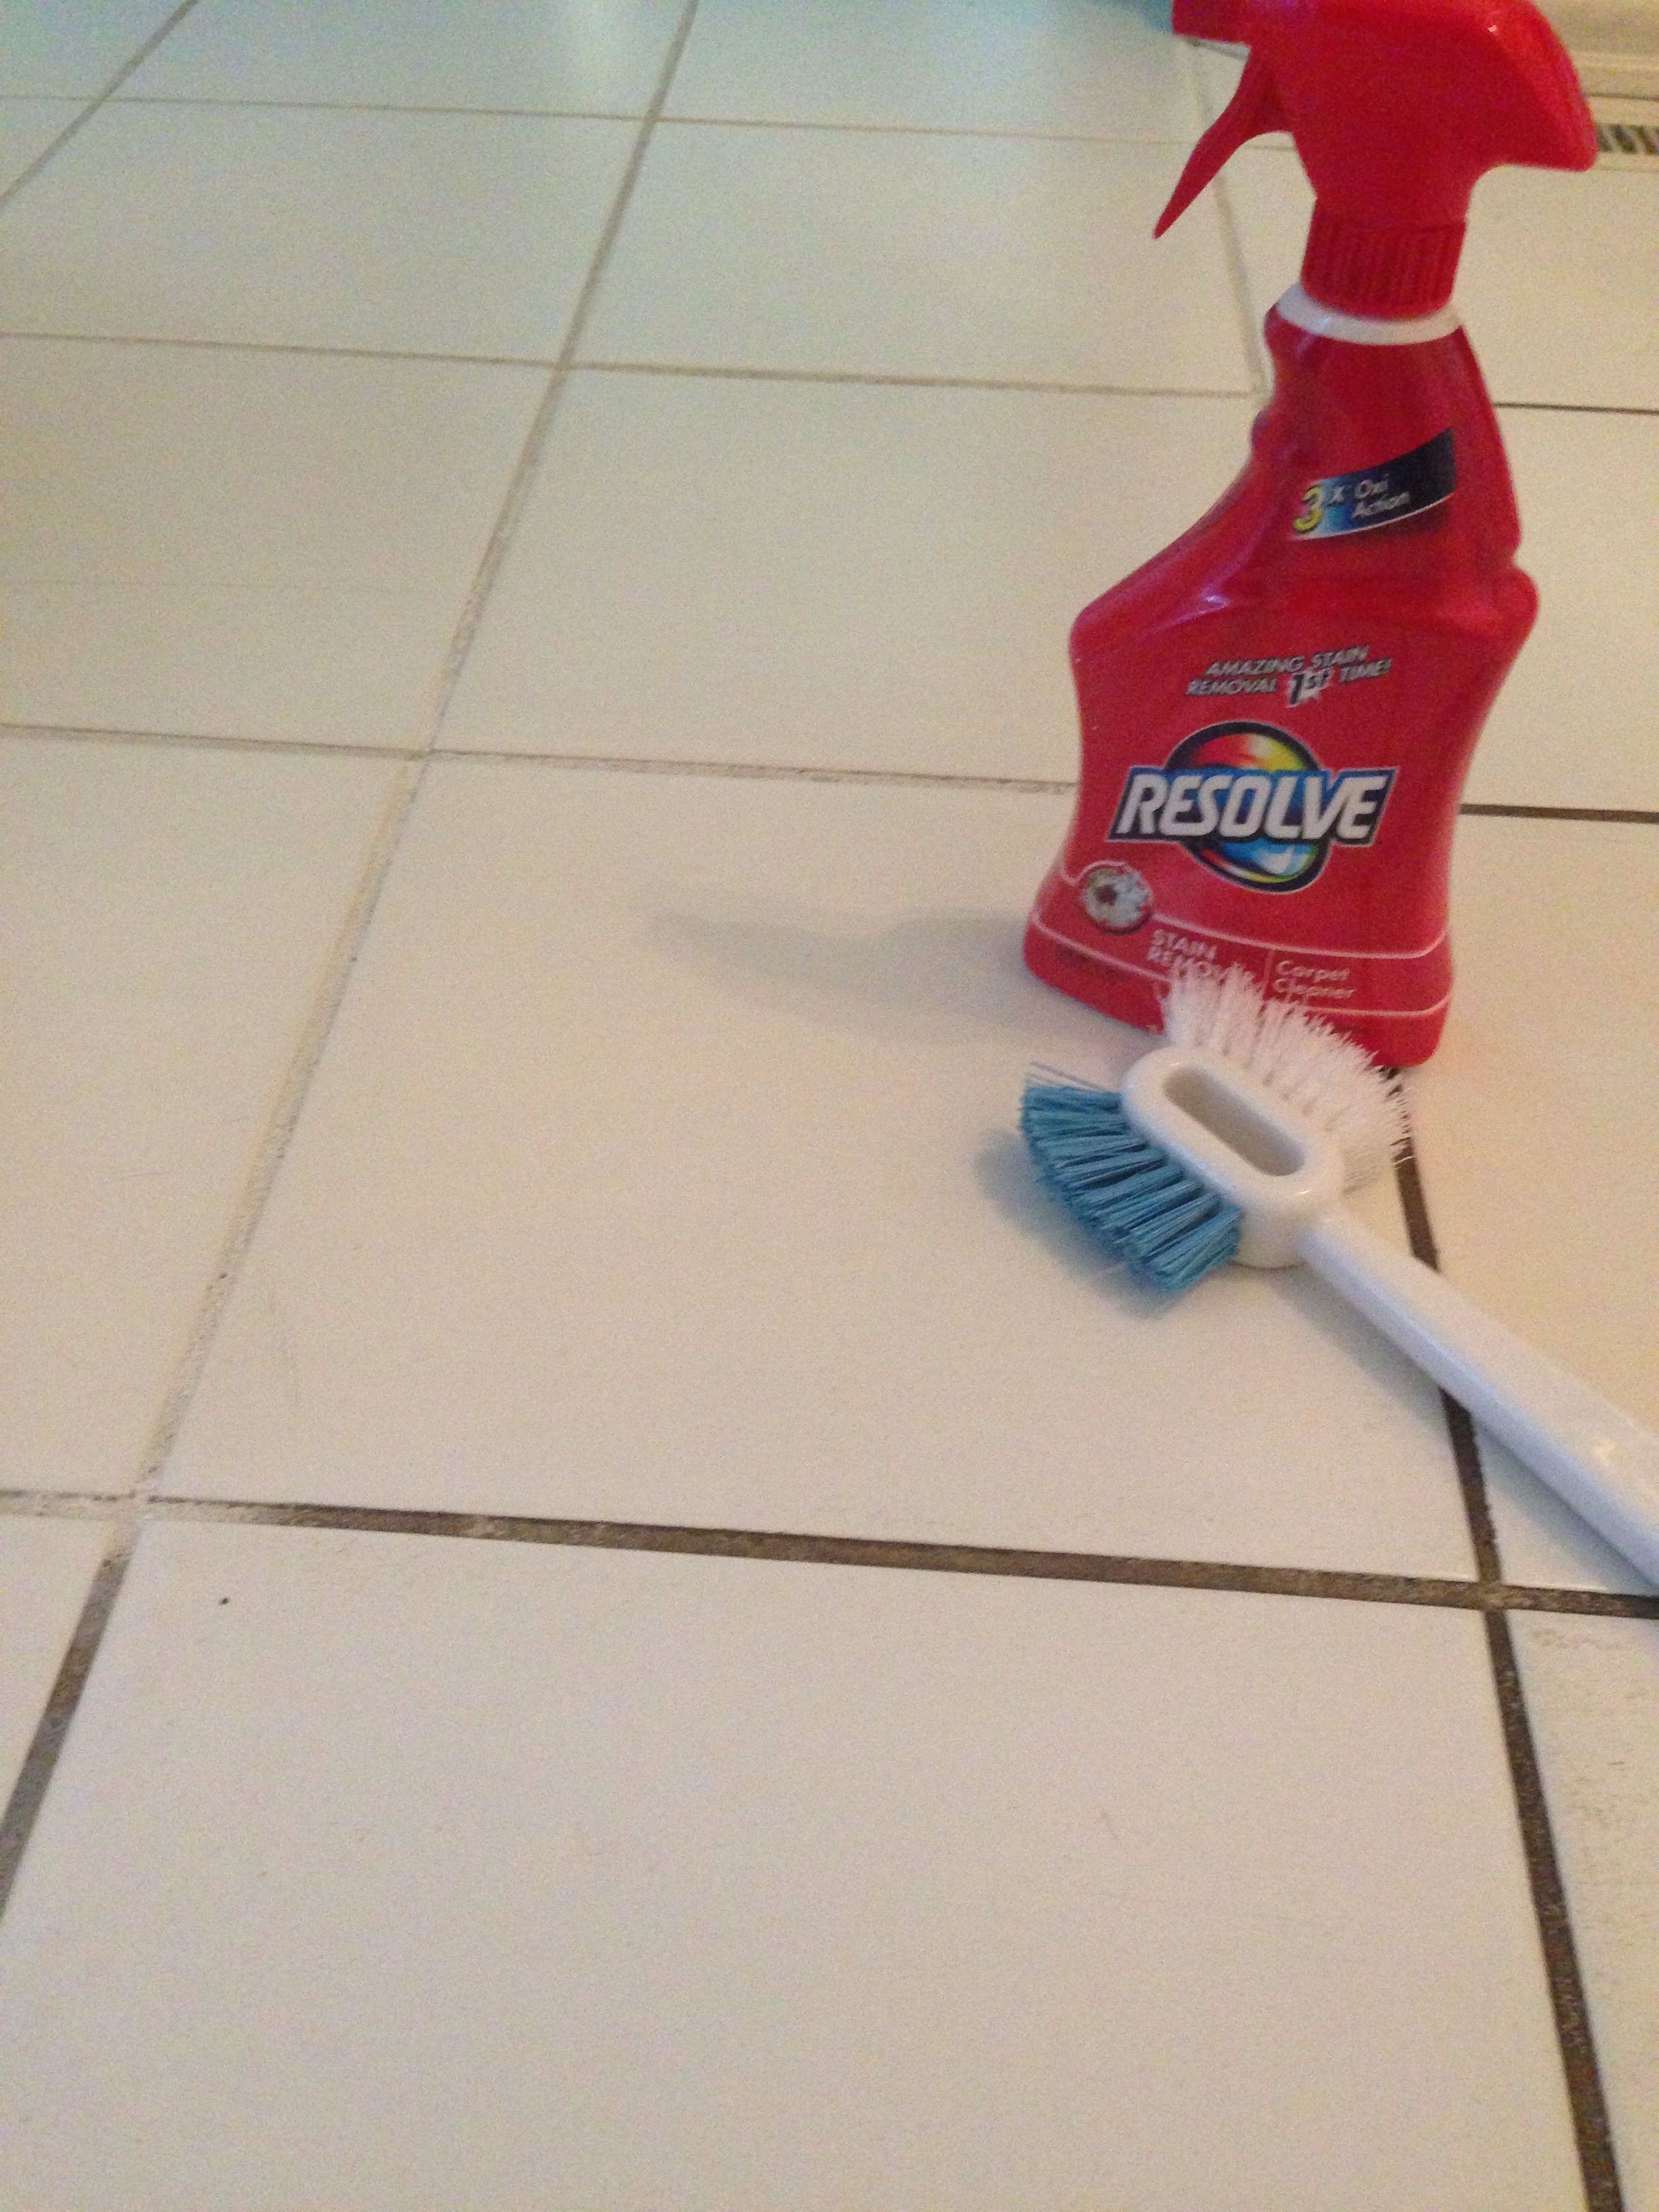 Resolve Carpet Cleaner To Clean Grout Diy Cleaning Products